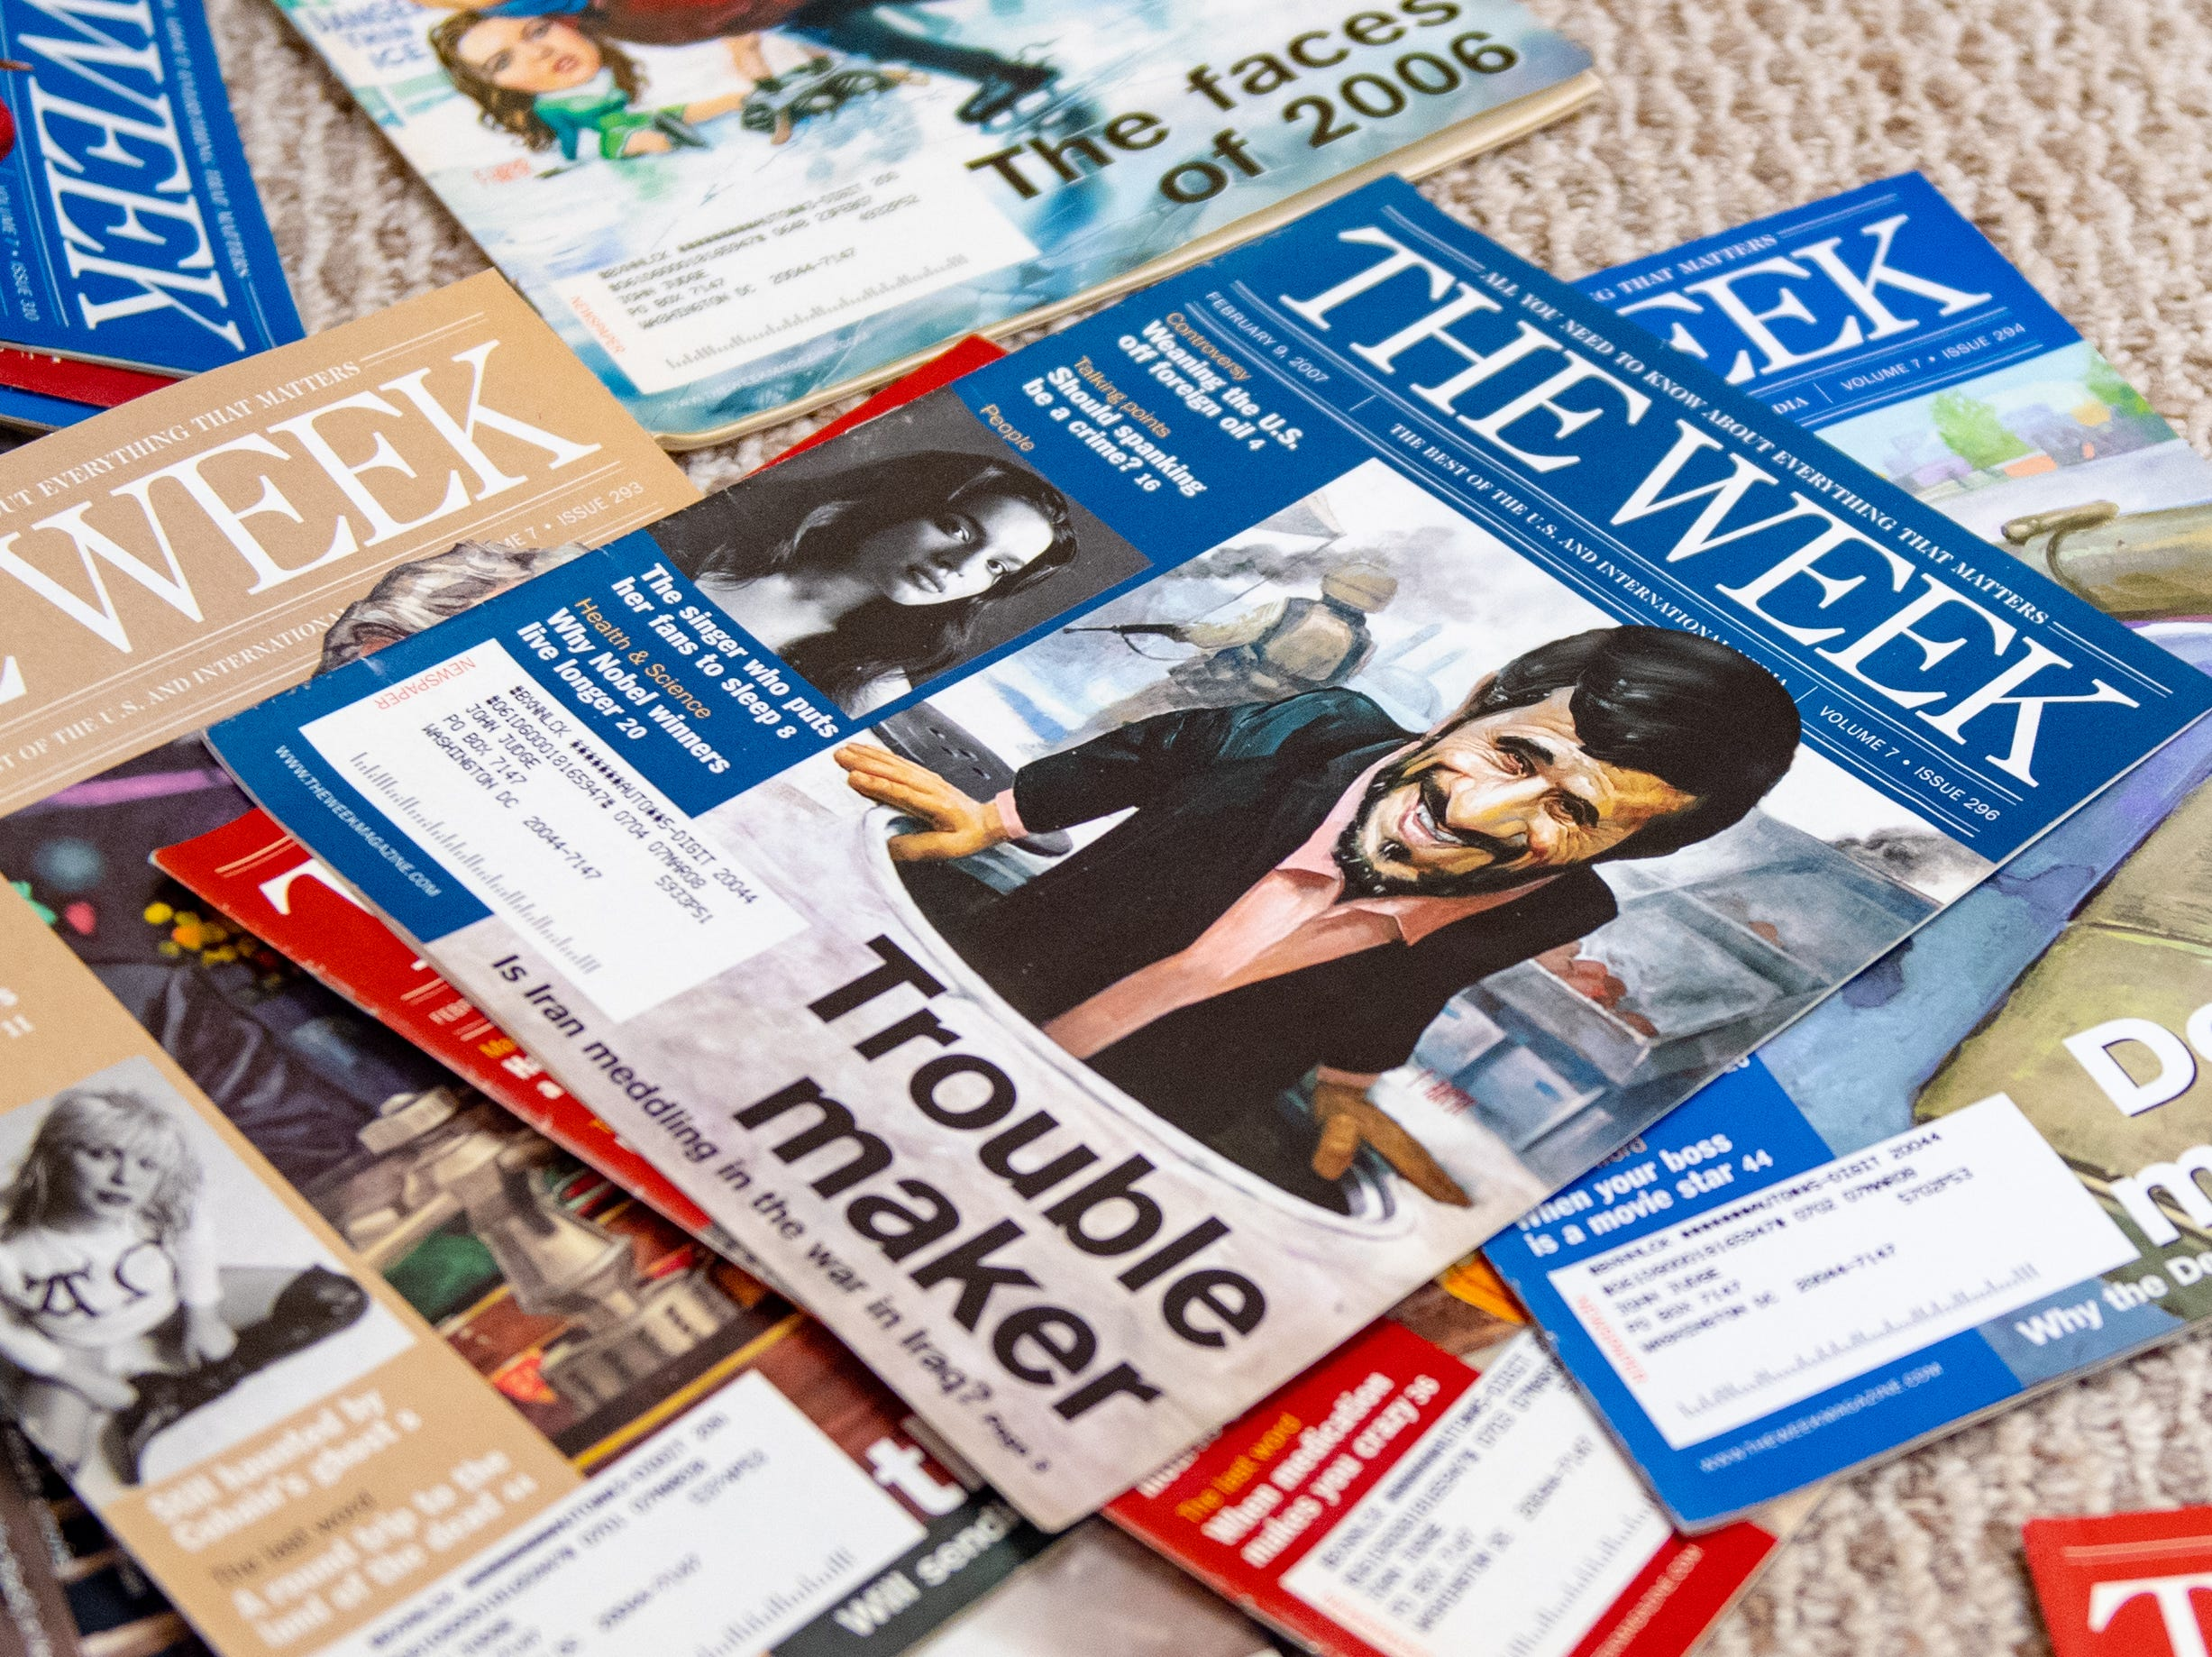 Certain magazines are grouped together making it easier to locate specific articles at the national Hidden History Museum and Research Center, January 12, 2019.